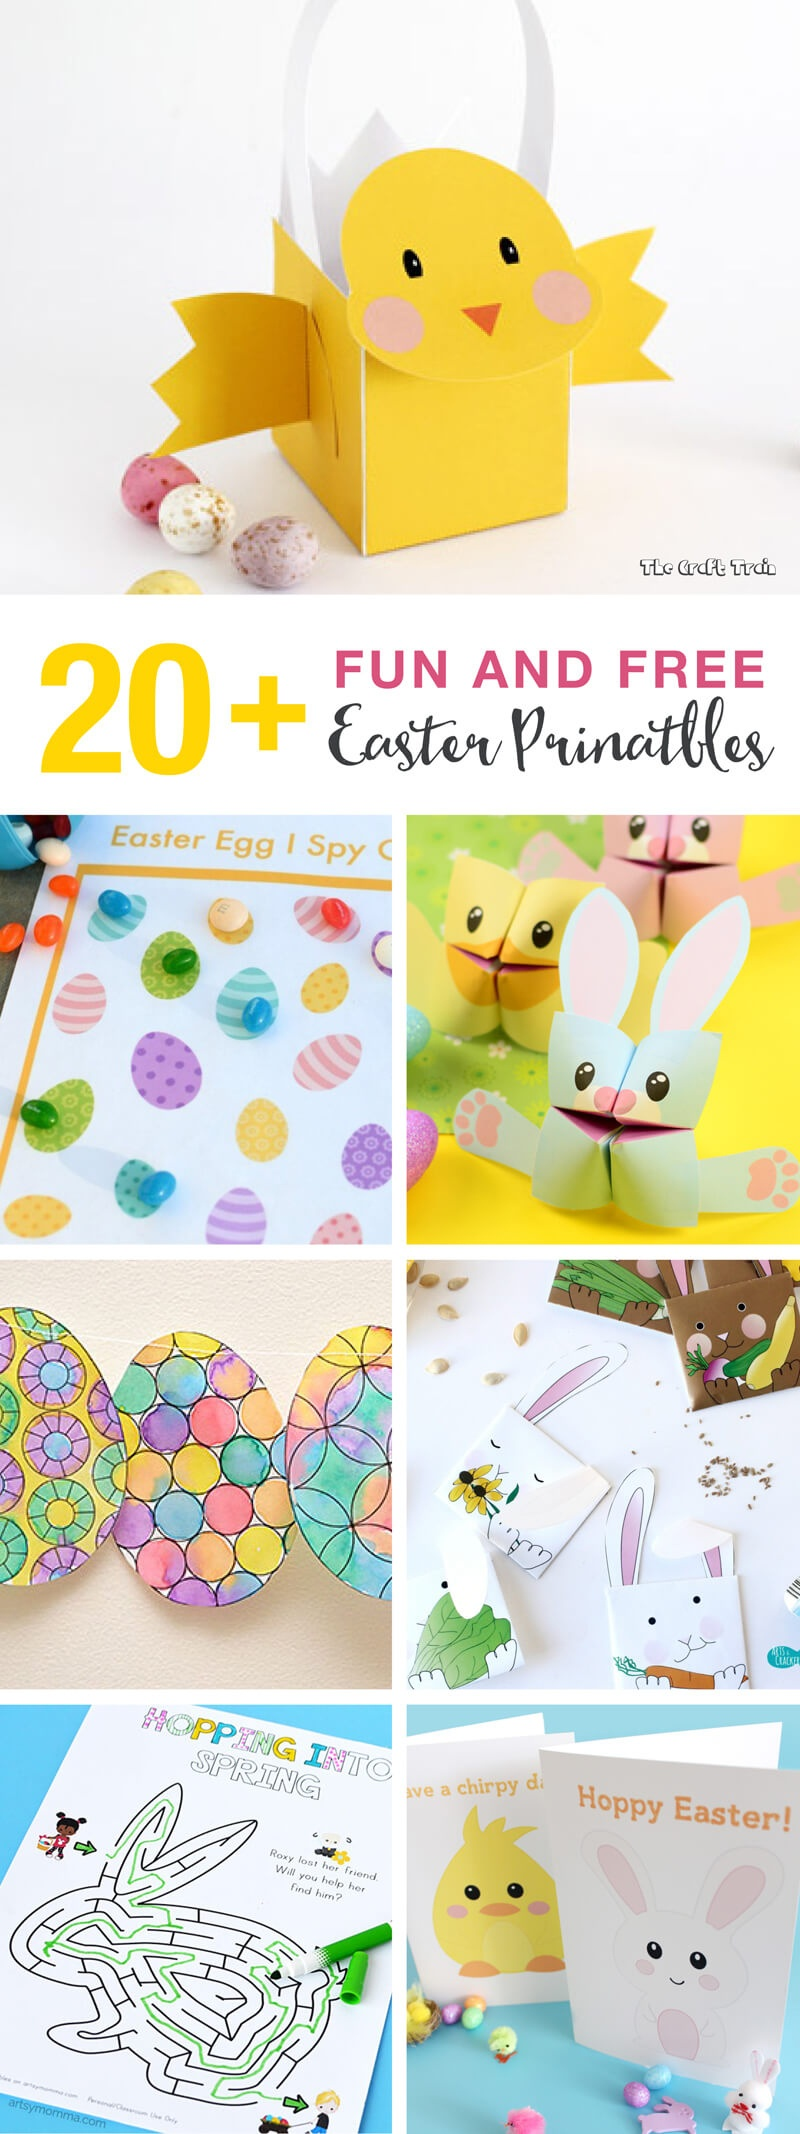 20+ Fun And Free Easter Printables For Kids   The Craft Train - Free Printable Craft Activities